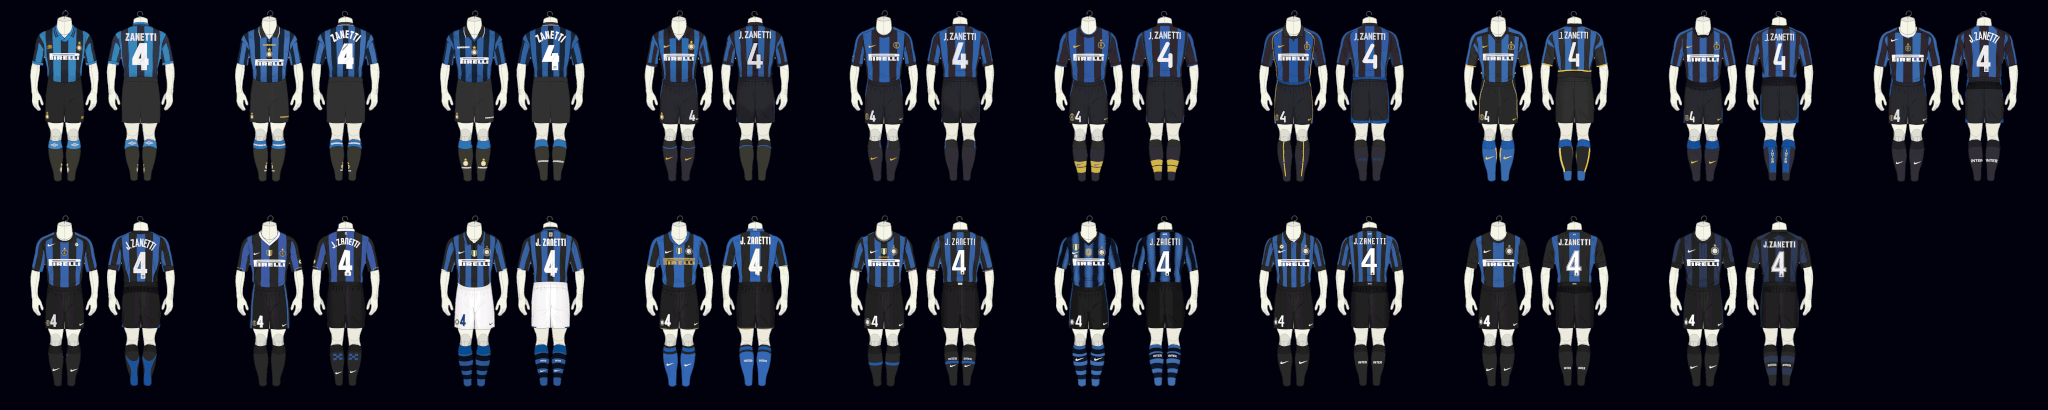 Zanetti_Shirts_Black